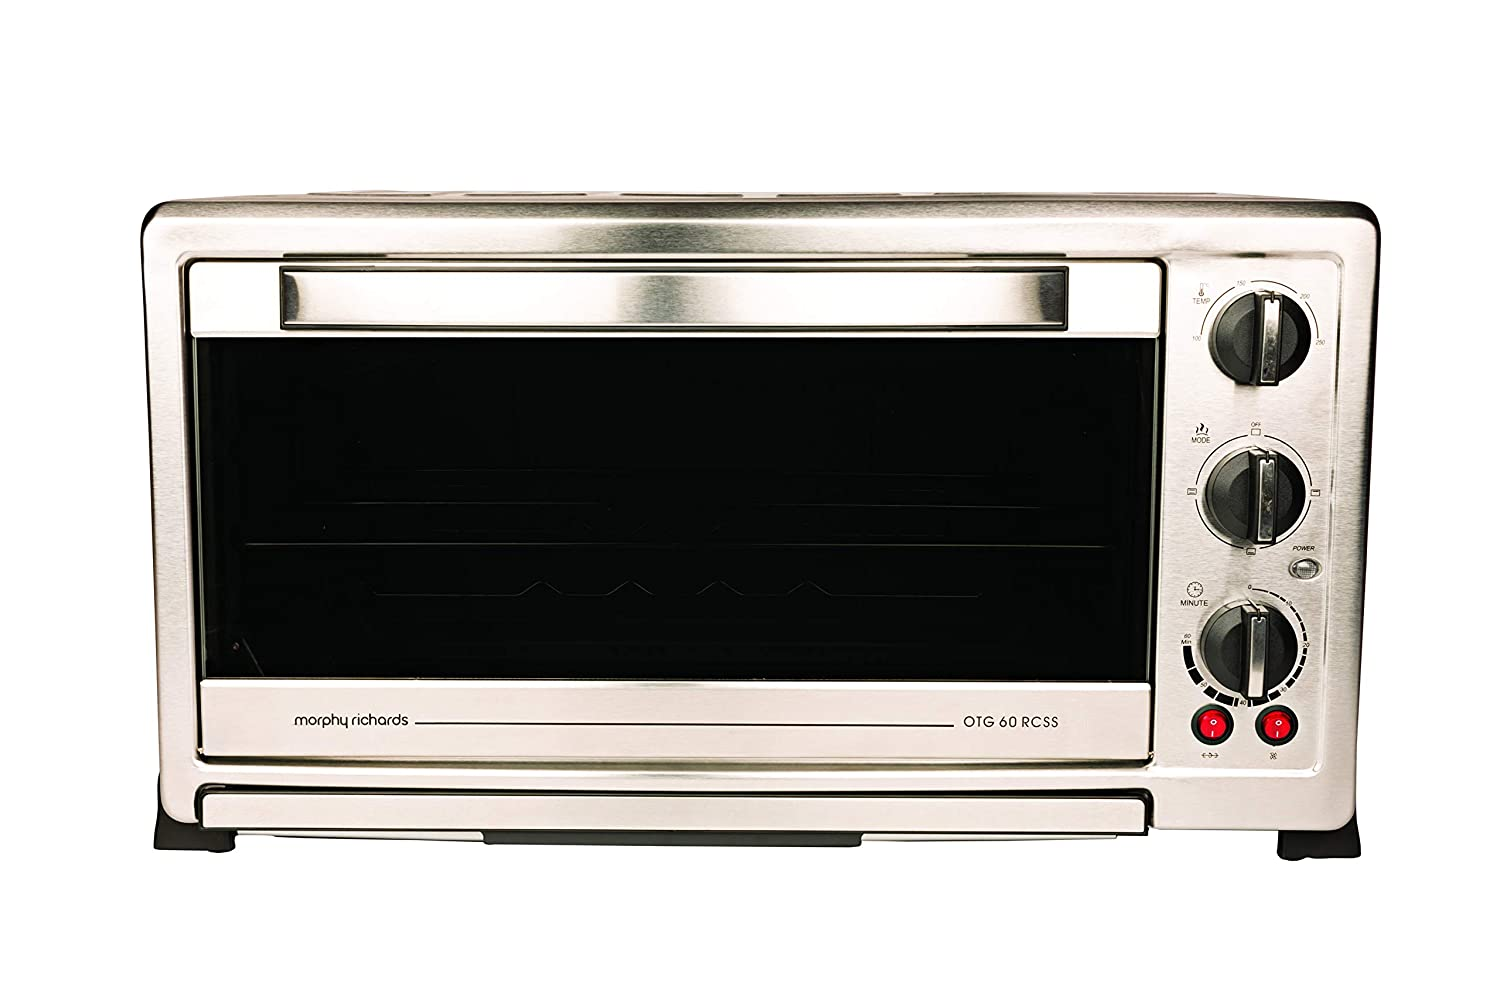 Morphy Richards 60 RCSS 60-Litre Oven Toaster Grill